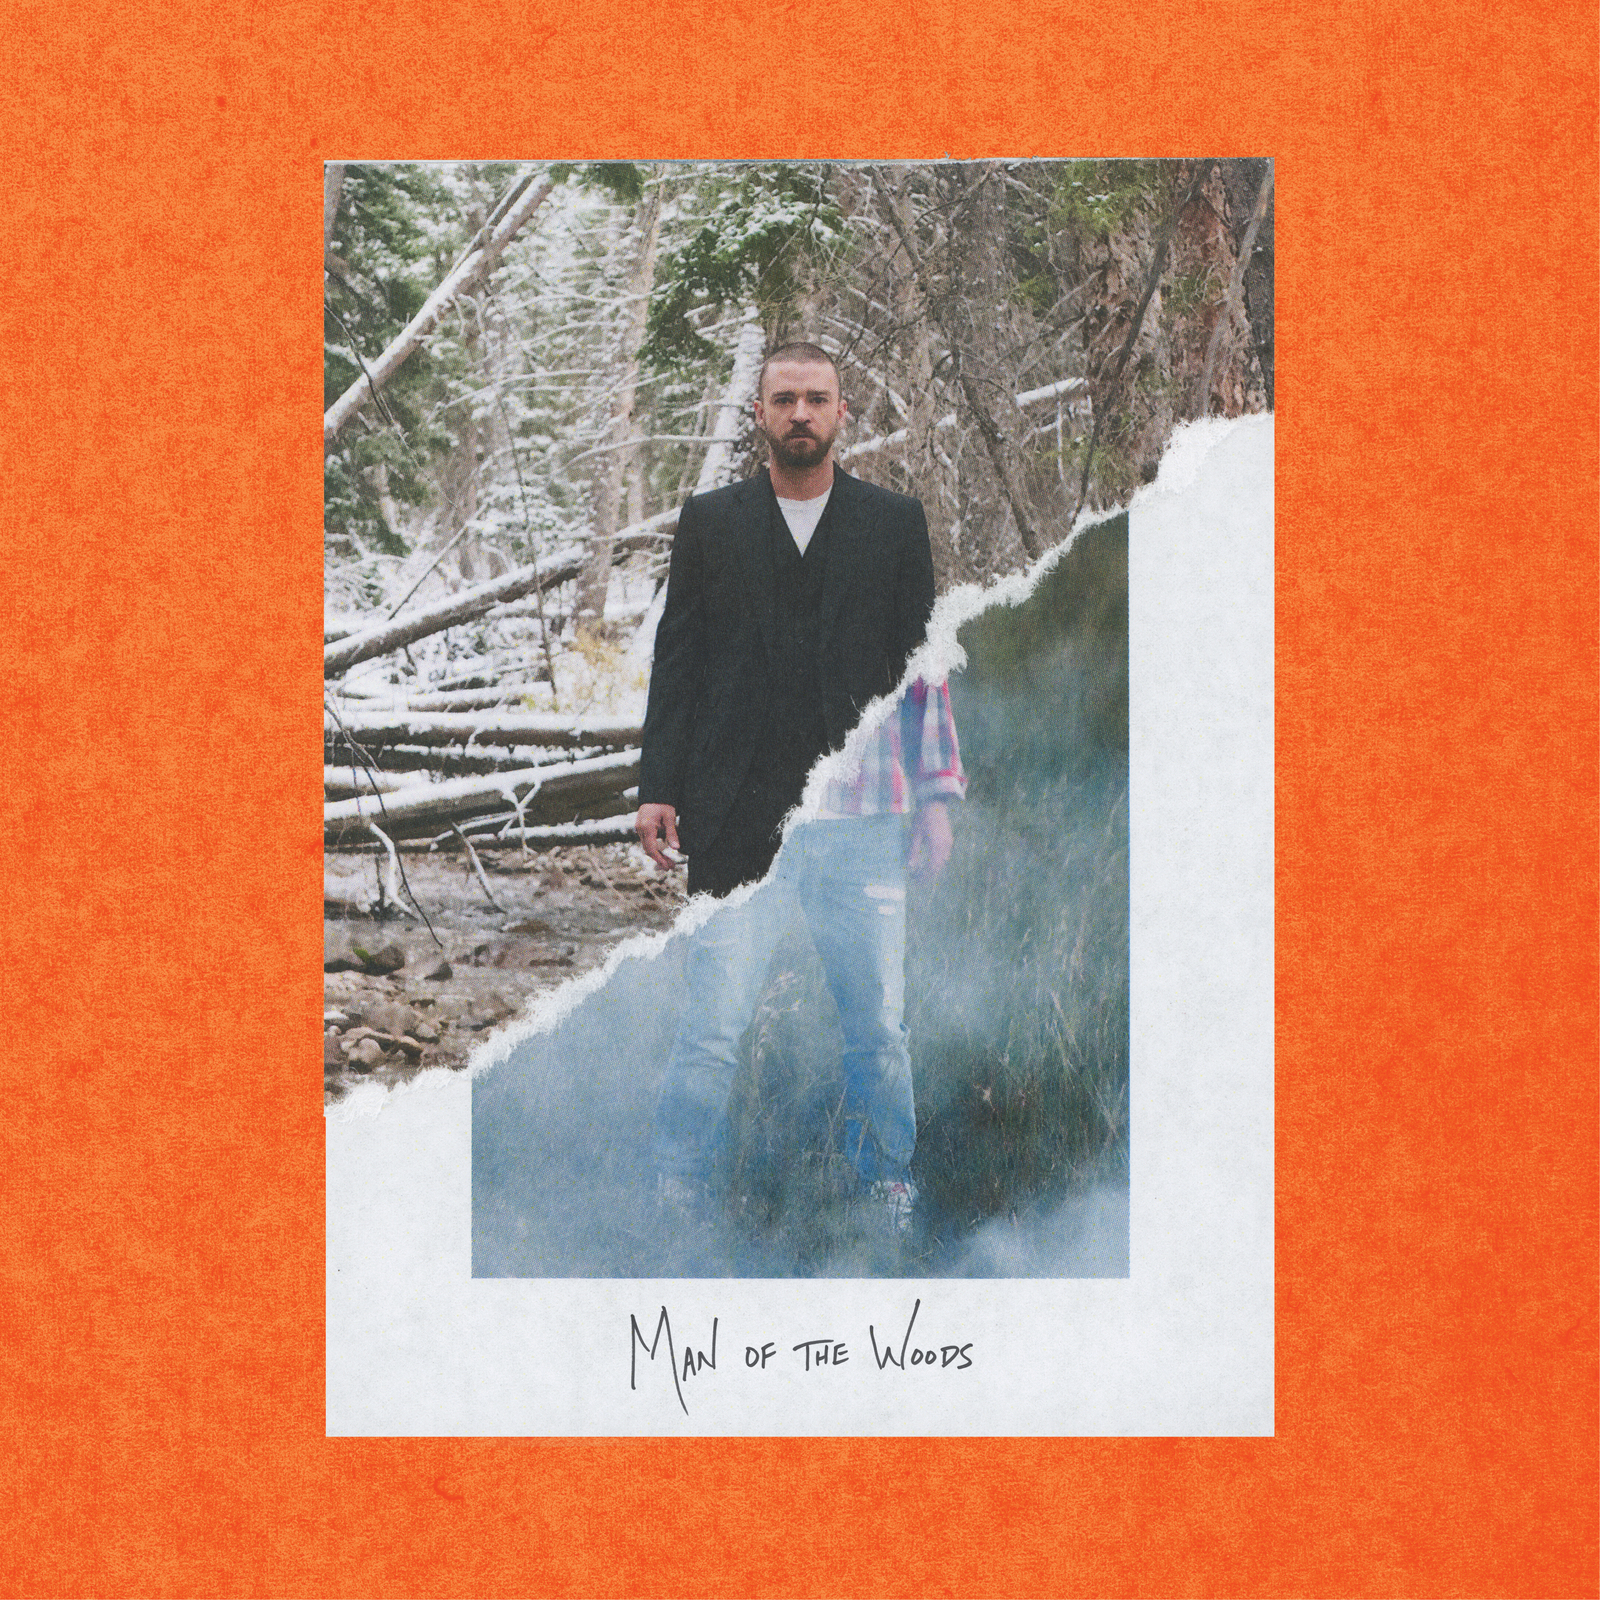 Man Of The Woods by Justin Timberlake image